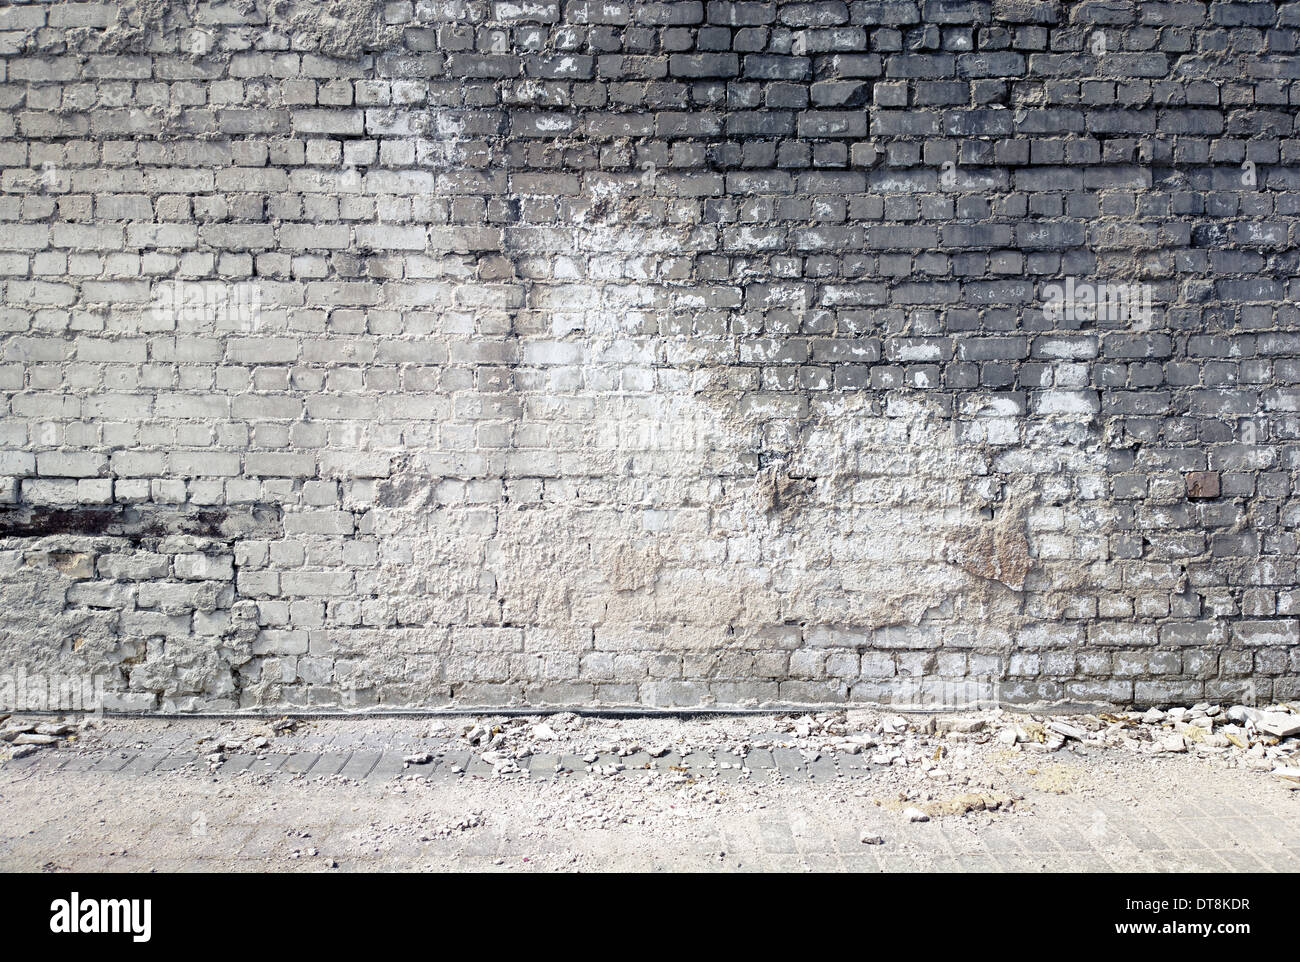 aged street wall background texture stock photo 66573747 alamy. Black Bedroom Furniture Sets. Home Design Ideas